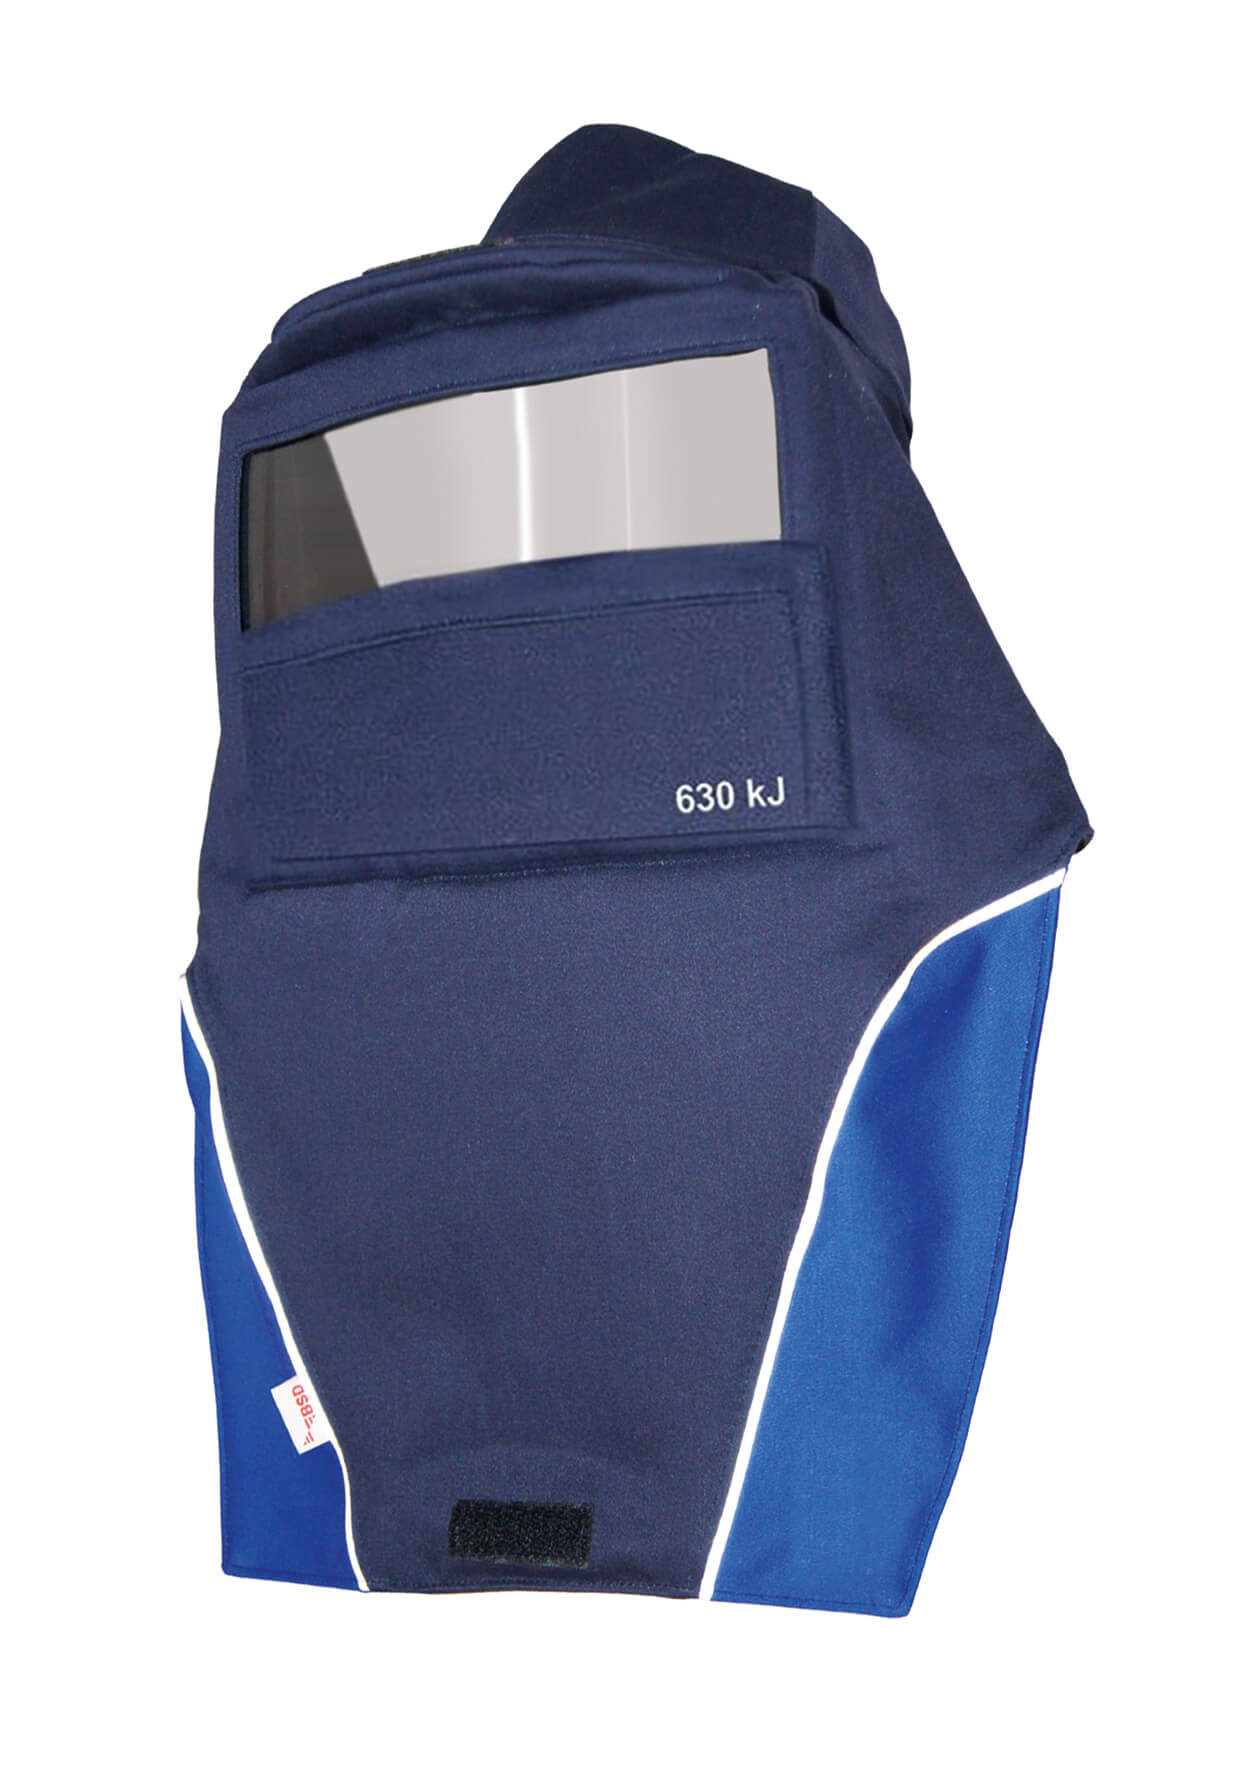 Arc flash hood plus, HRC 3, 25.0 cal/cm²